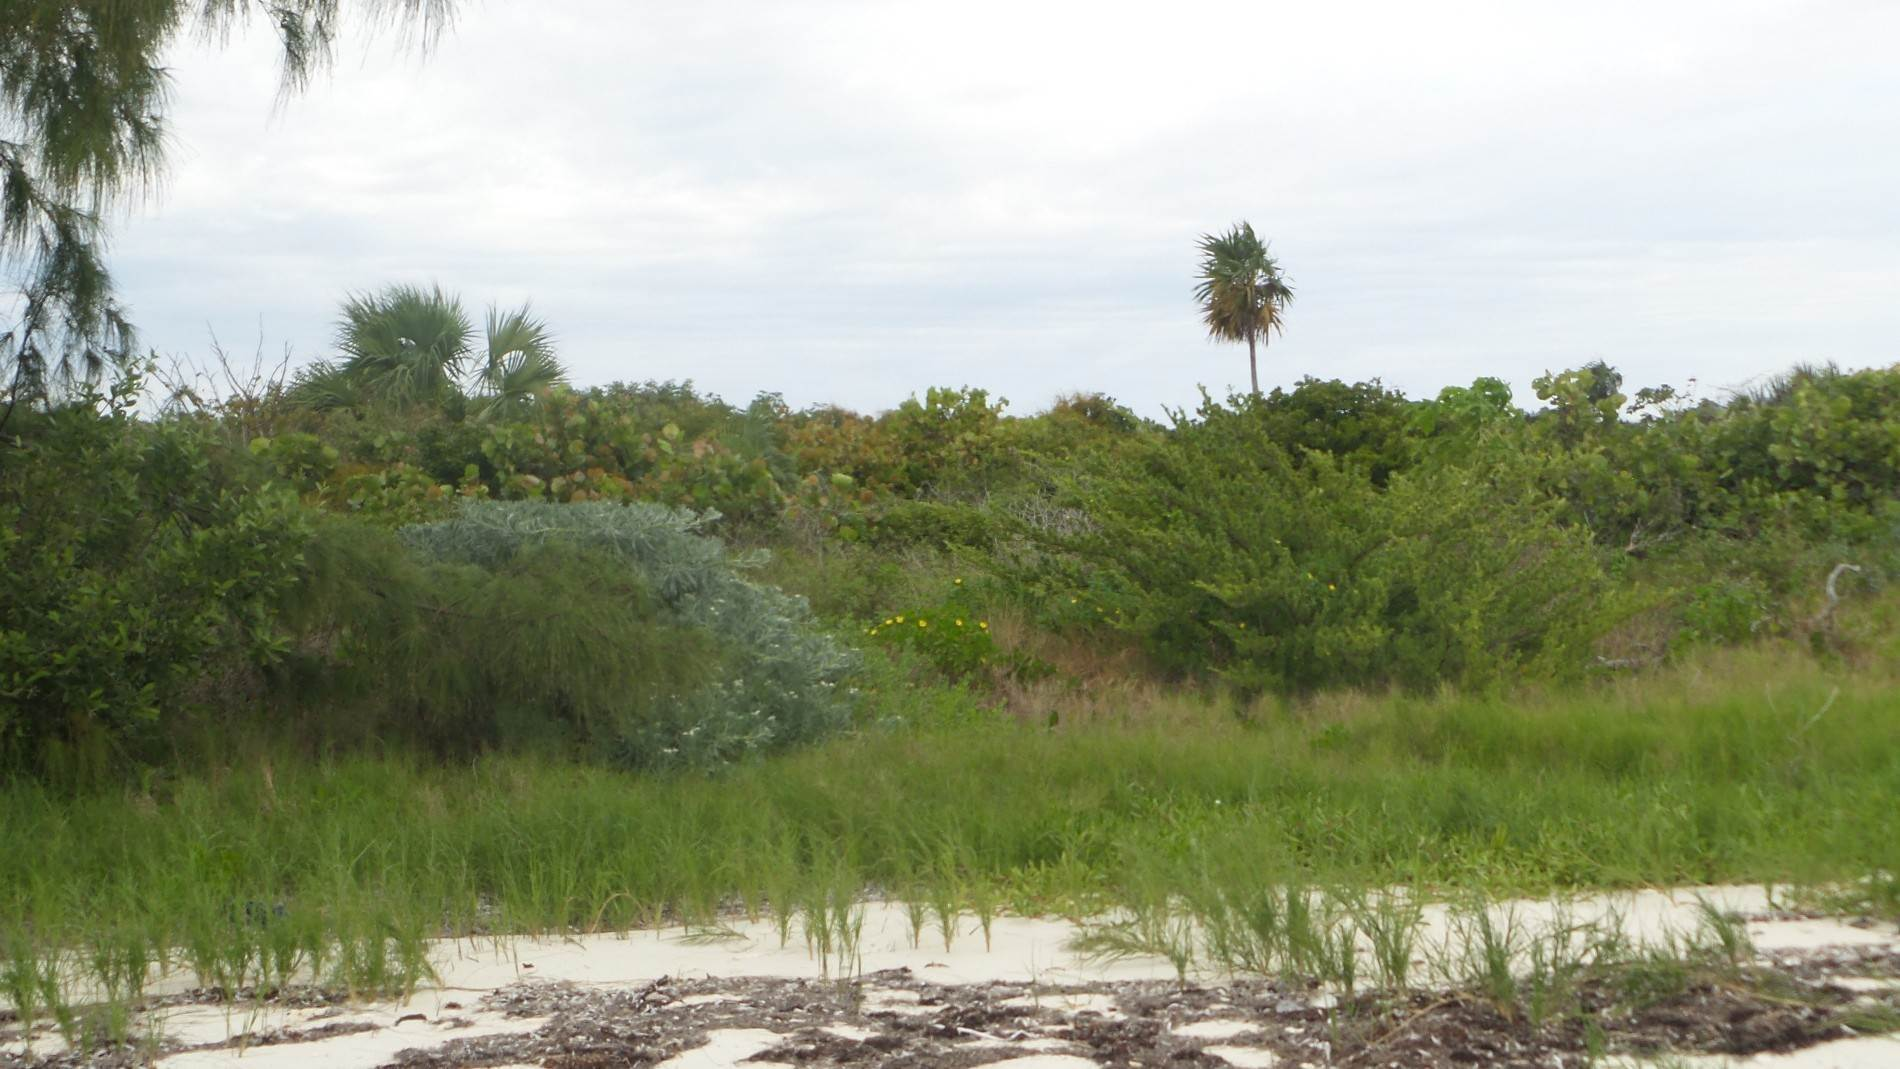 10. Private Islands por un Venta en Large Private Island in Abaco with approved development Plans - MLS 42074 Abaco, Bahamas